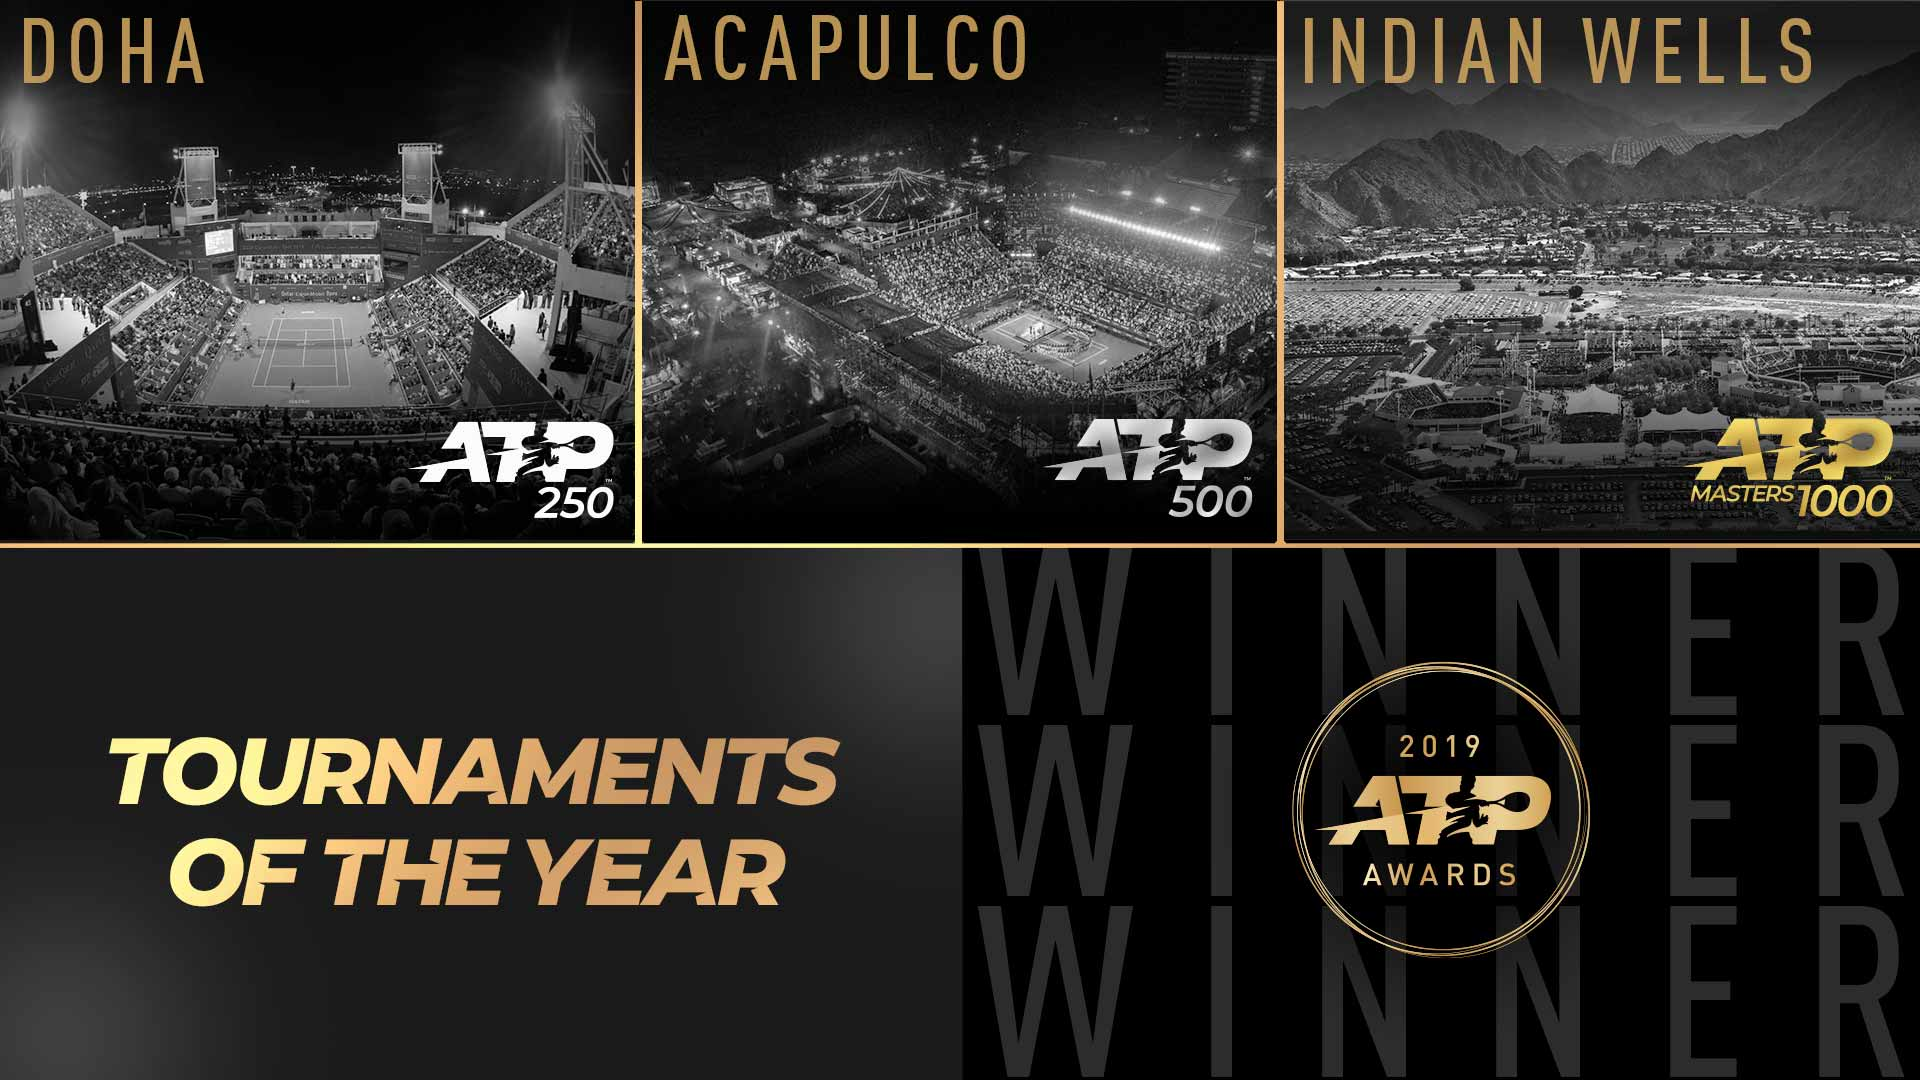 The BNP Paribas Open in Indian Well, Abierto Mexicano Telcel presentado por HSBC in Acapulco and Qatar ExxonMobil Open in Doha  have been named Tournament of the Year in the 2019 ATP Awards.